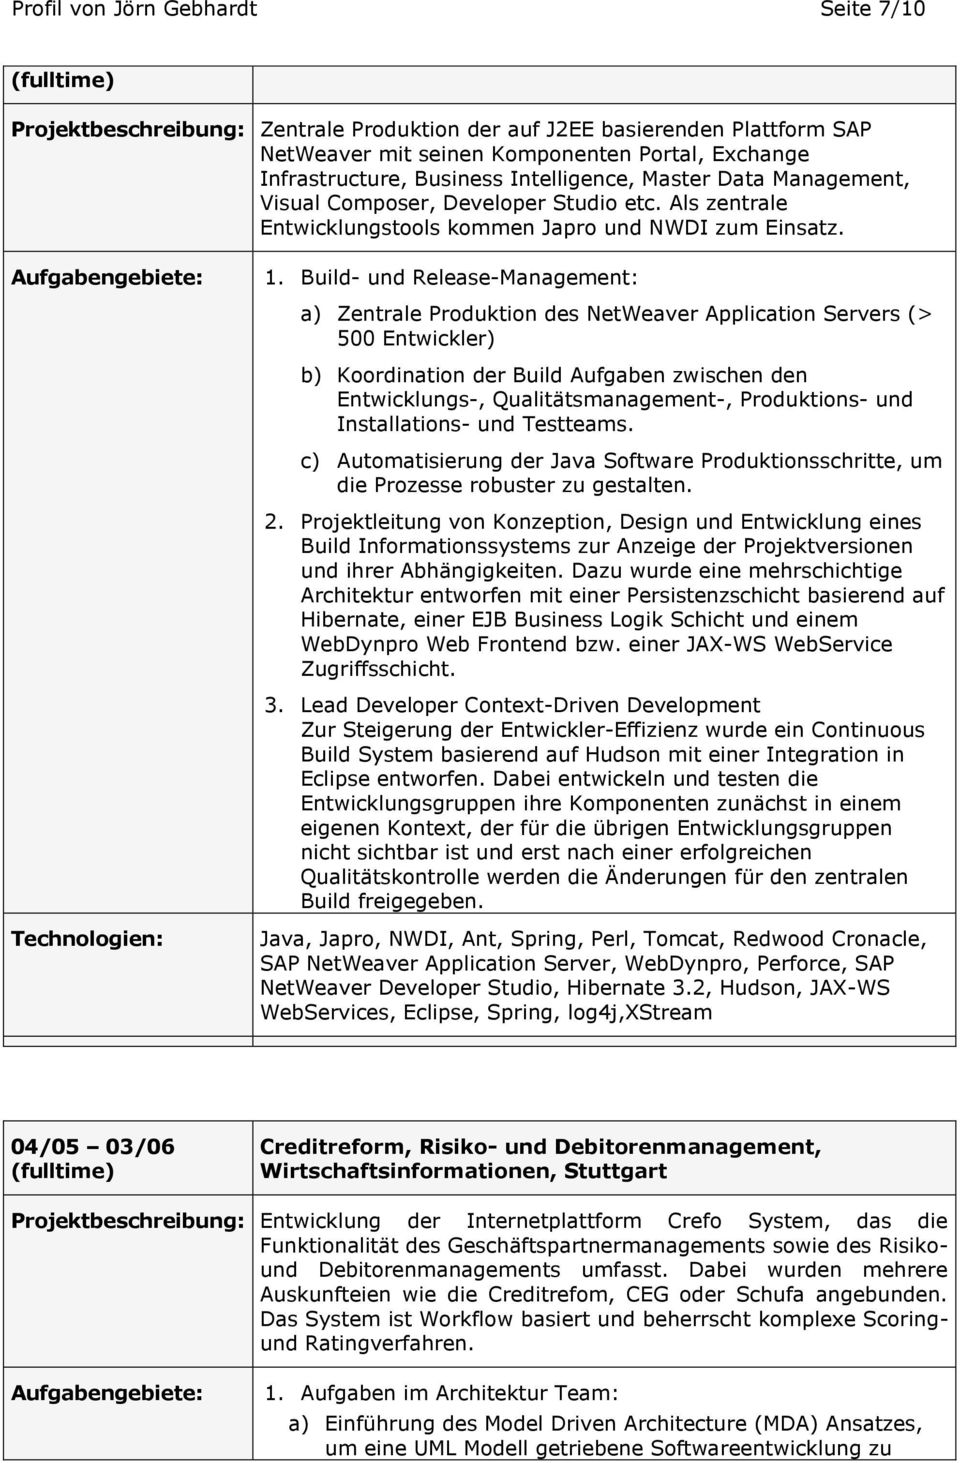 Build- und Release-Management: a) Zentrale Produktion des NetWeaver Application Servers (> 500 Entwickler) b) Koordination der Build Aufgaben zwischen den Entwicklungs-, Qualitätsmanagement-,